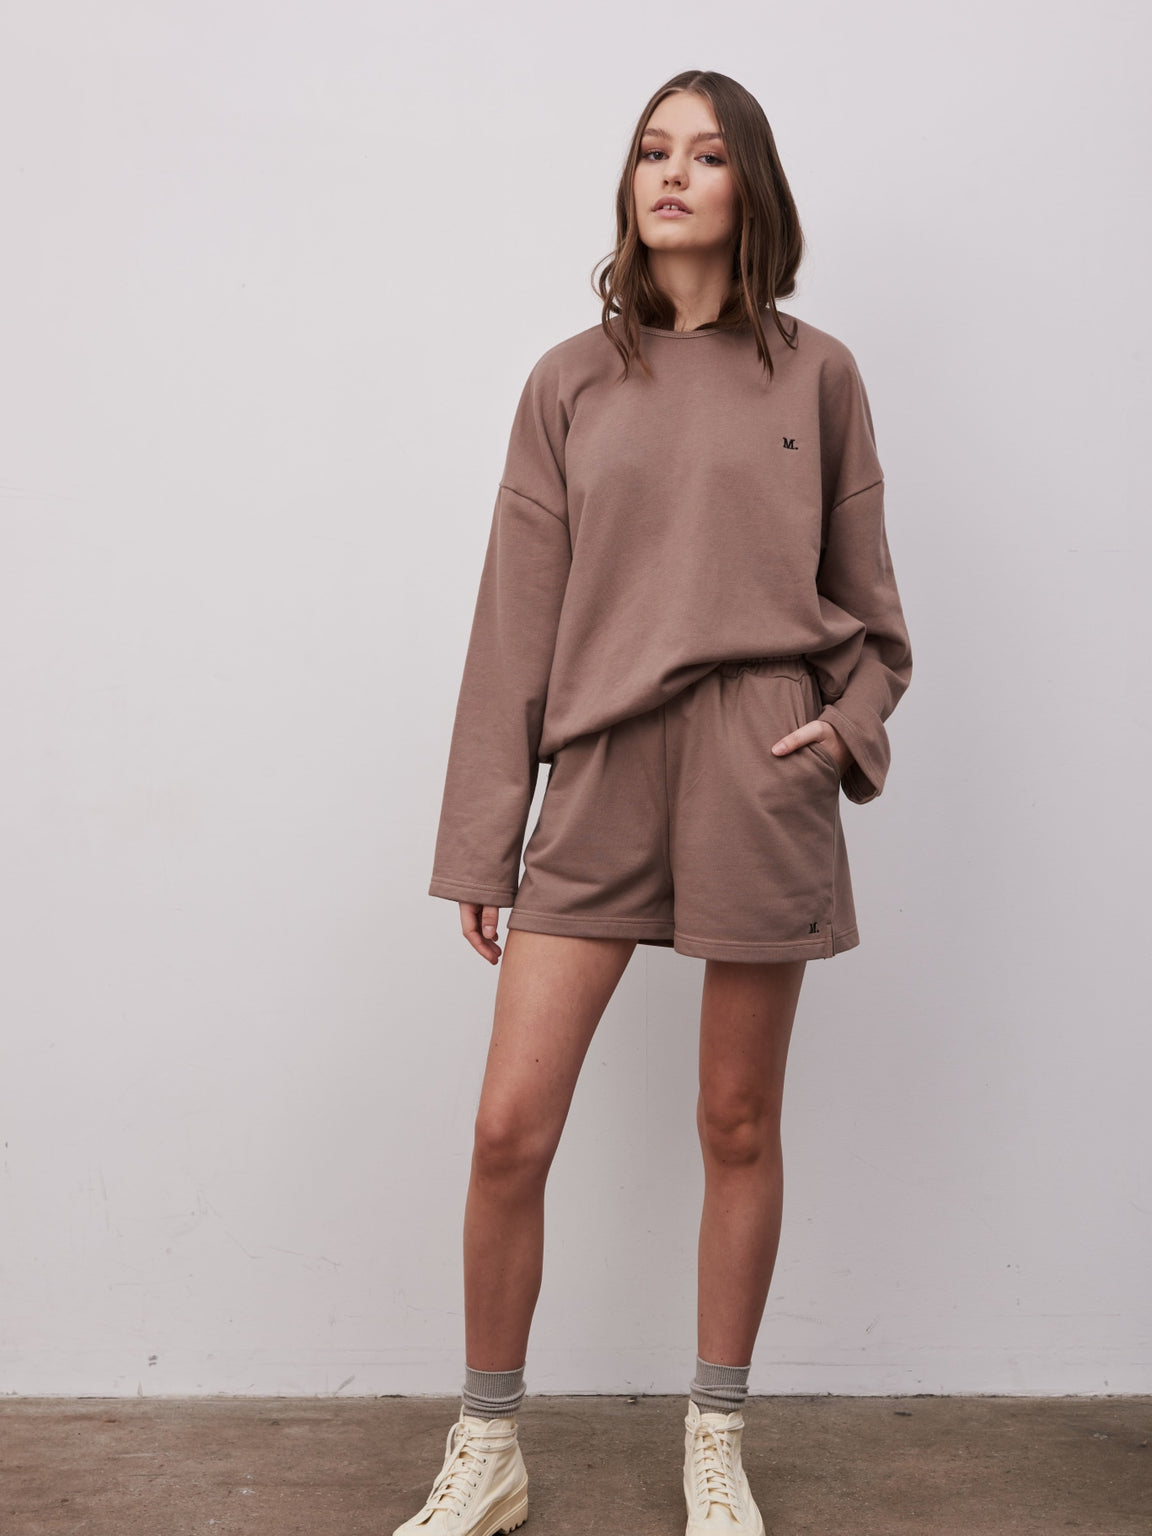 KYLIE SWEATSHIRT - FUDGE BROWN